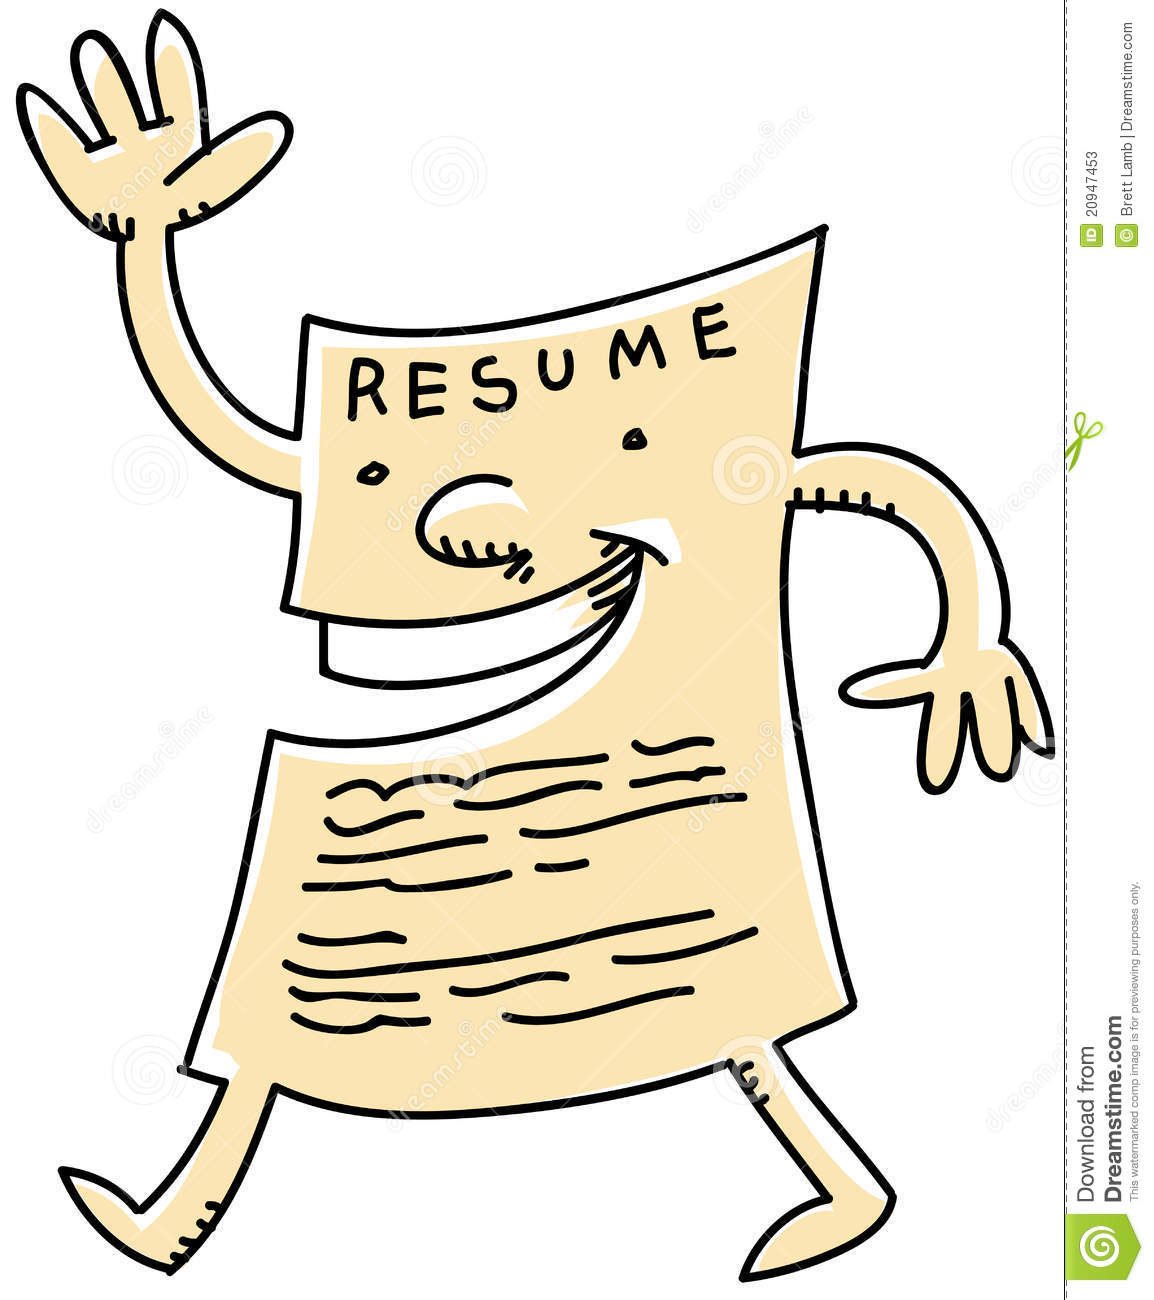 Resume Clipart | Free download best Resume Clipart on ClipArtMag.com